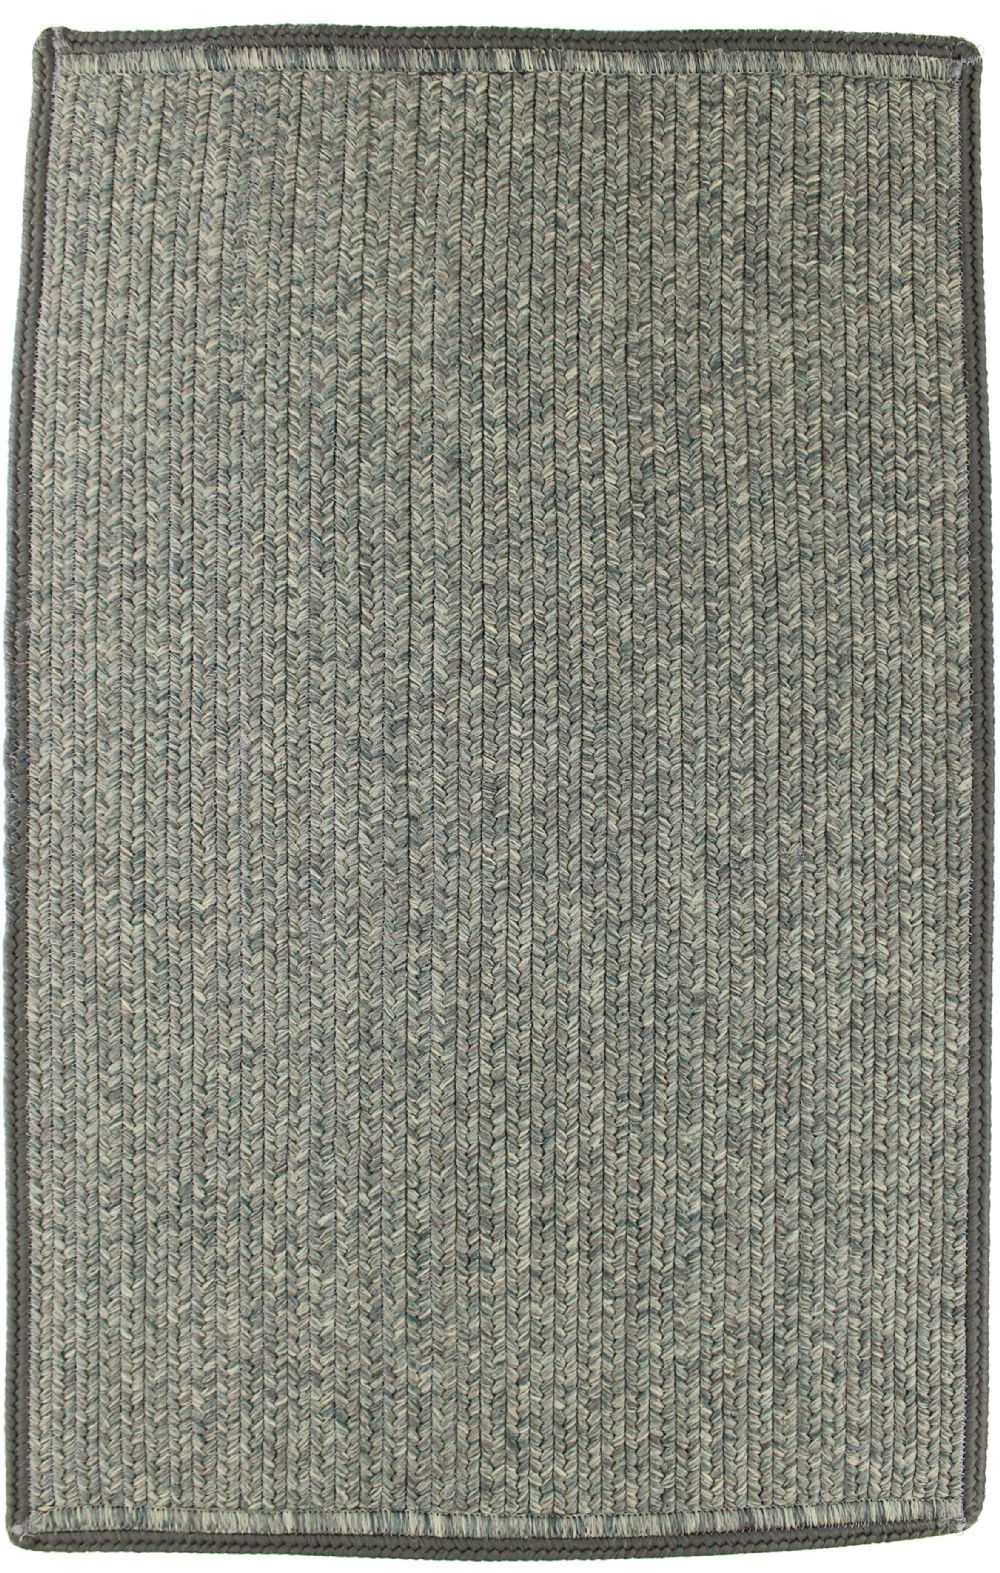 homespice decor lichen braided area rug collection